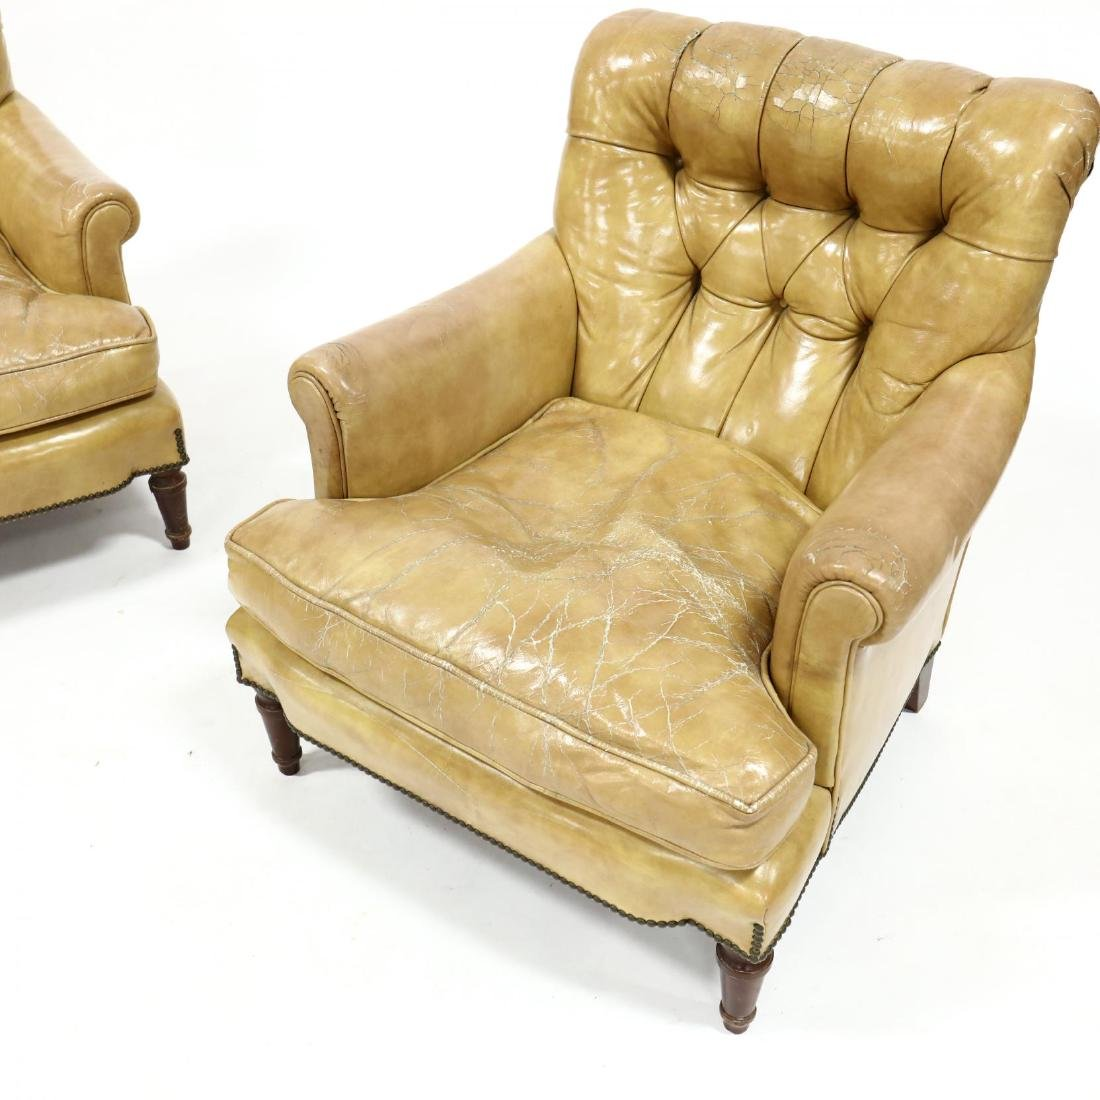 Pair of Vintage Leather Upholstered Club Chairs - 2